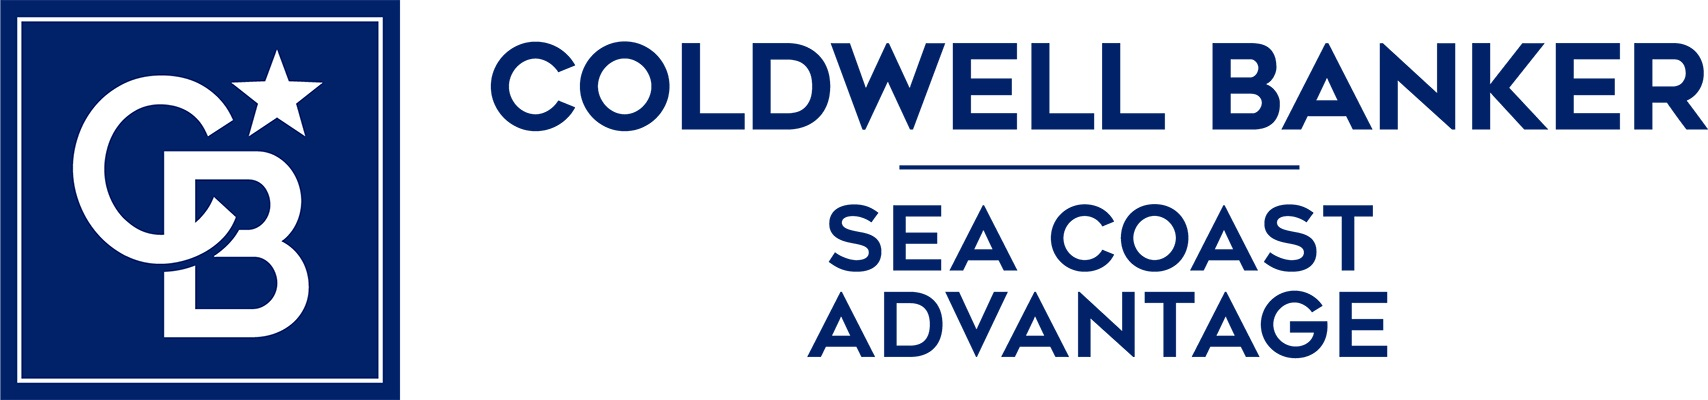 Linda Pelland - Coldwell Banker Sea Coast Advantage Realty